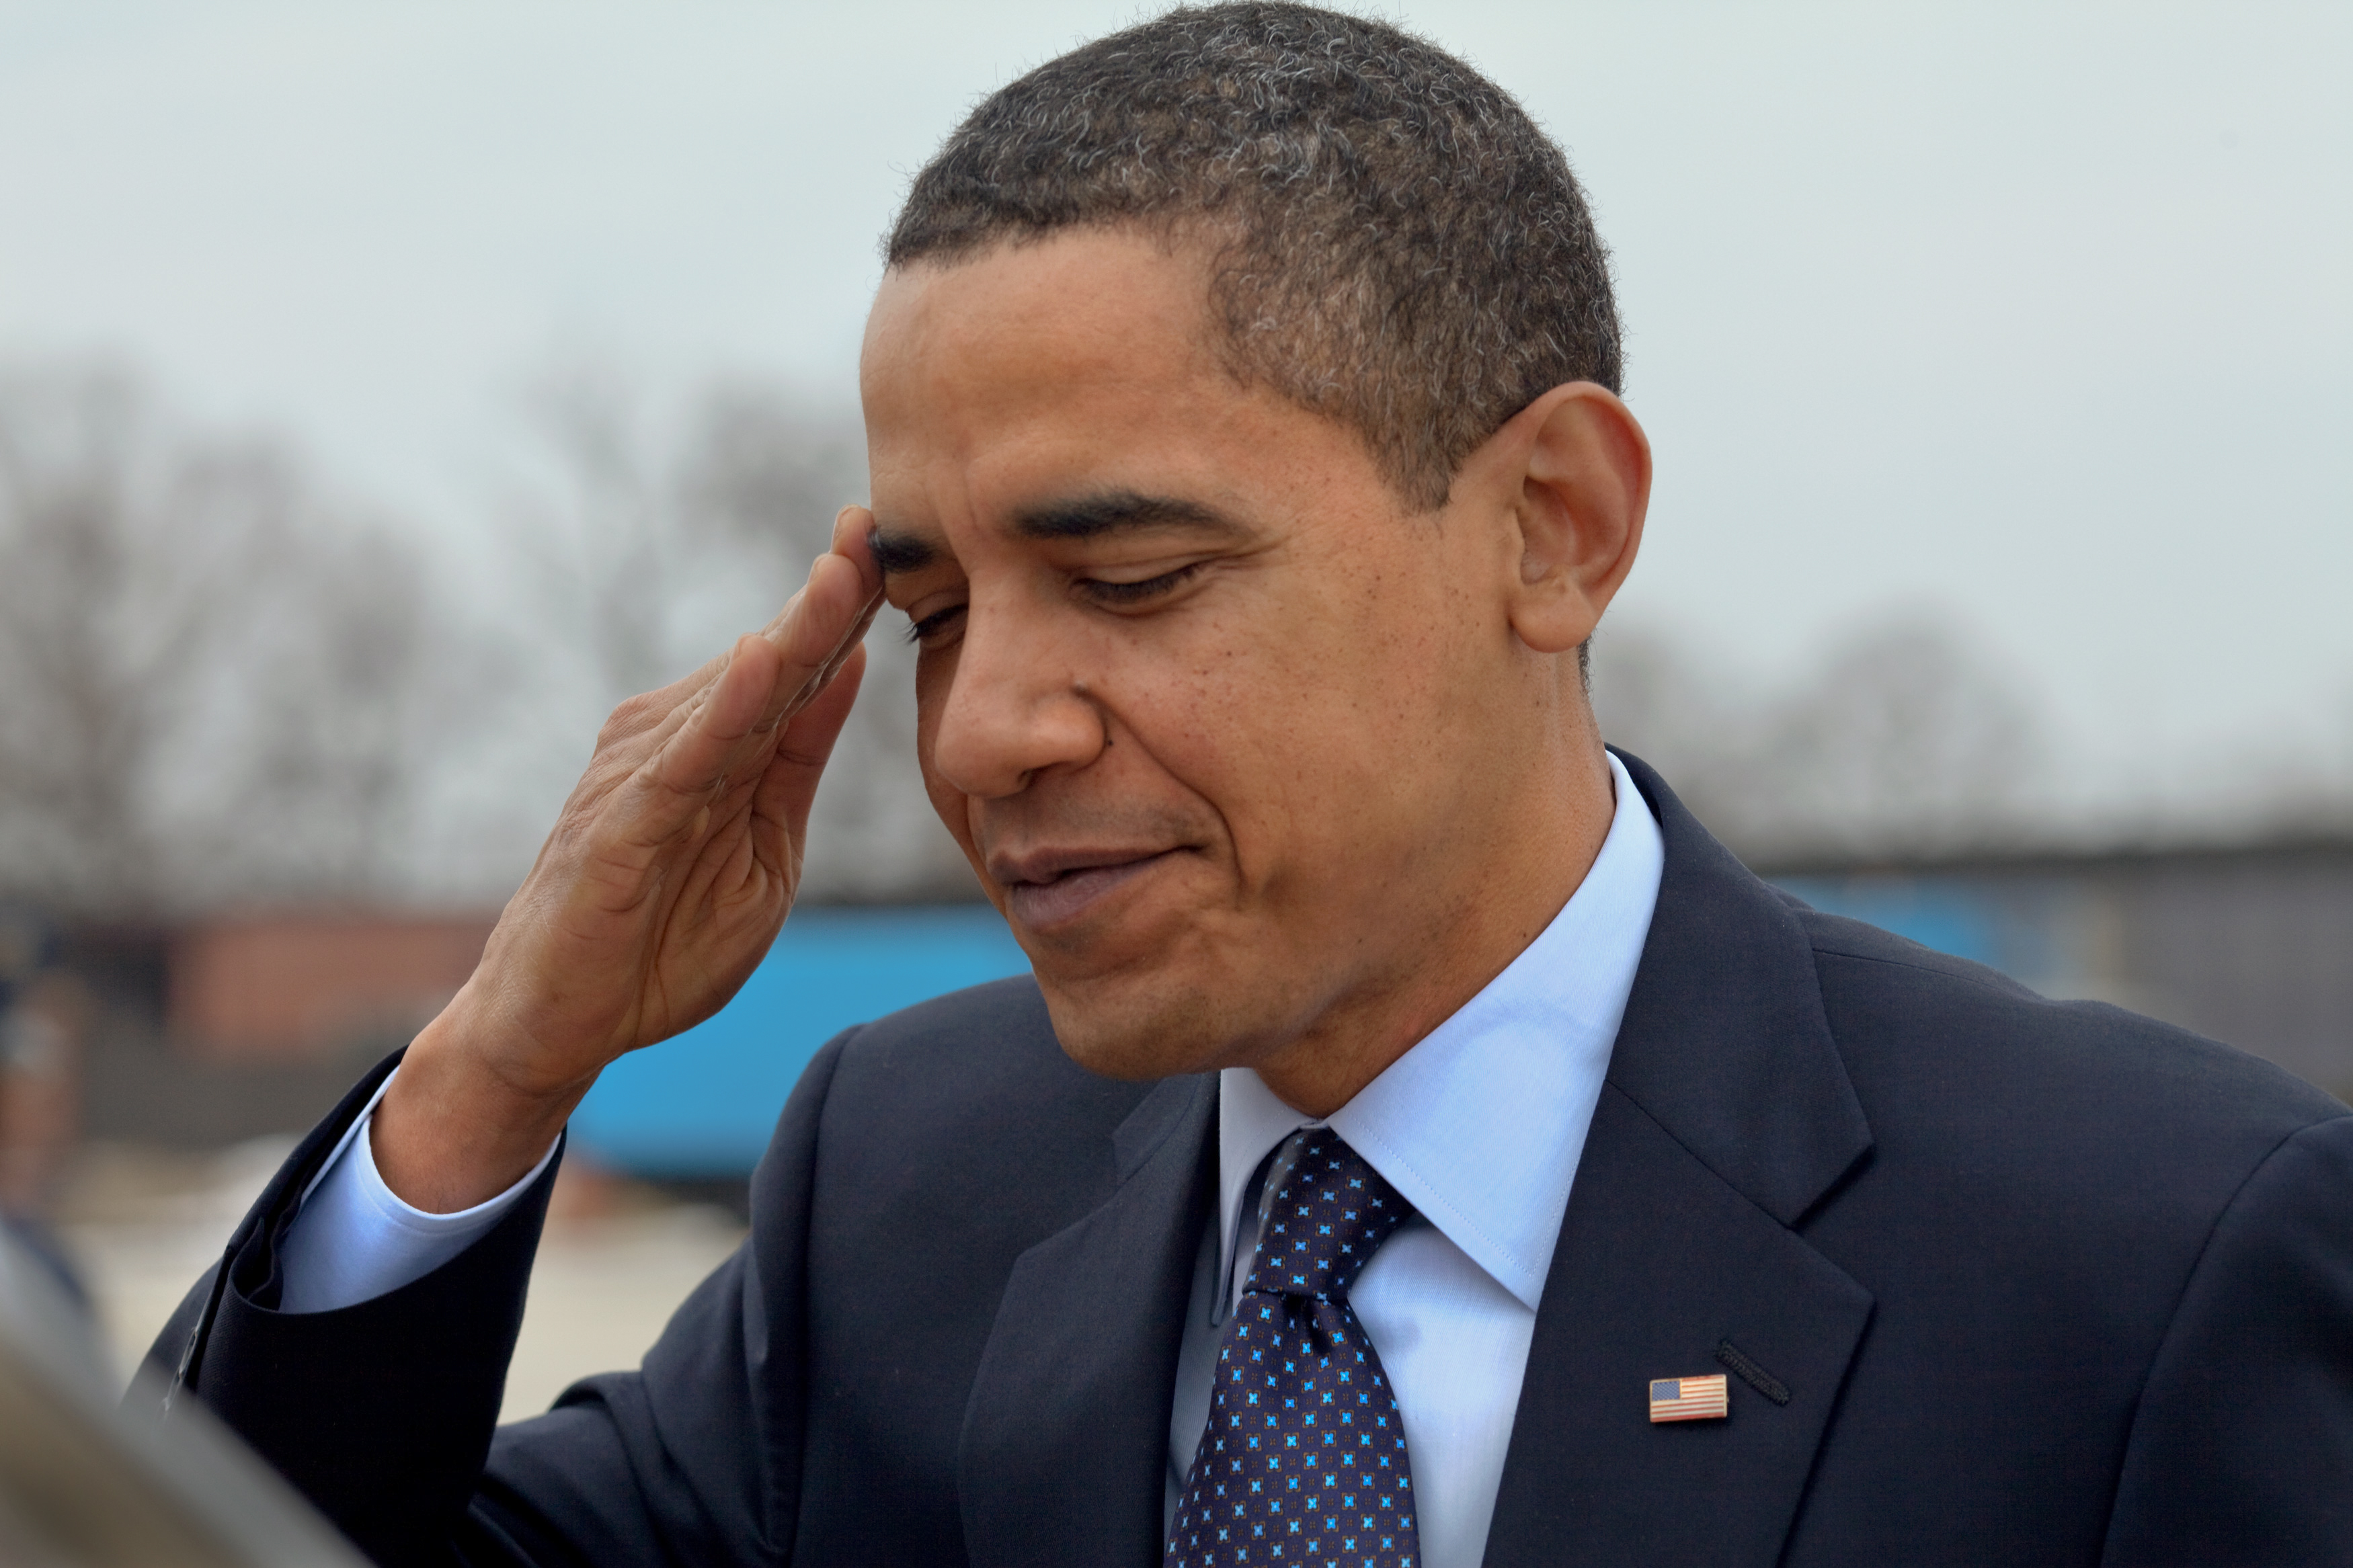 President Barack Obama salutes at Andrews Air Force Base before departing for Columbus, Ohio 3/6/09.